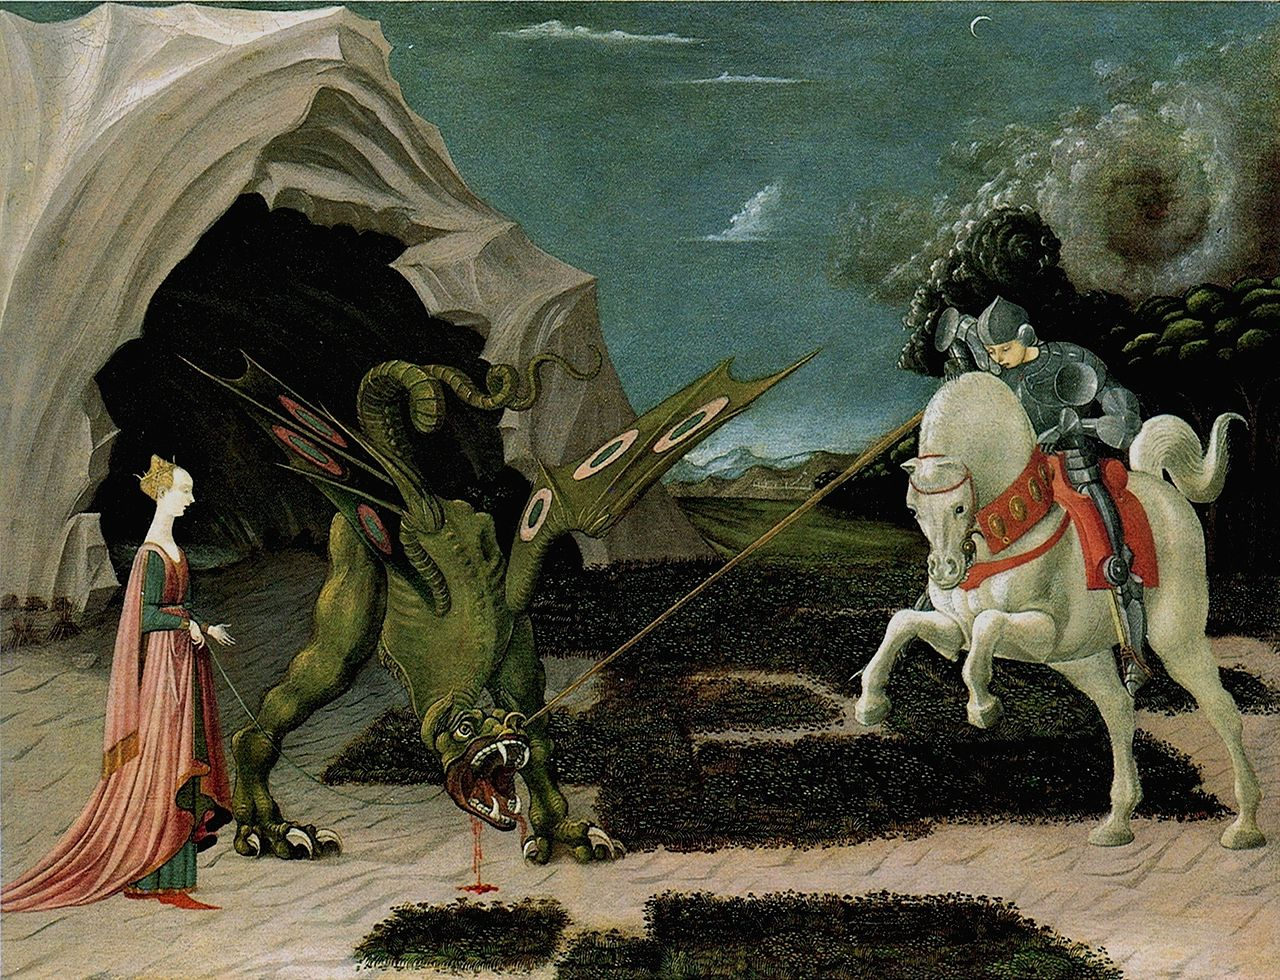 Saint George and the Dragon, 1470, Paolo Uccello, Florence, Italy